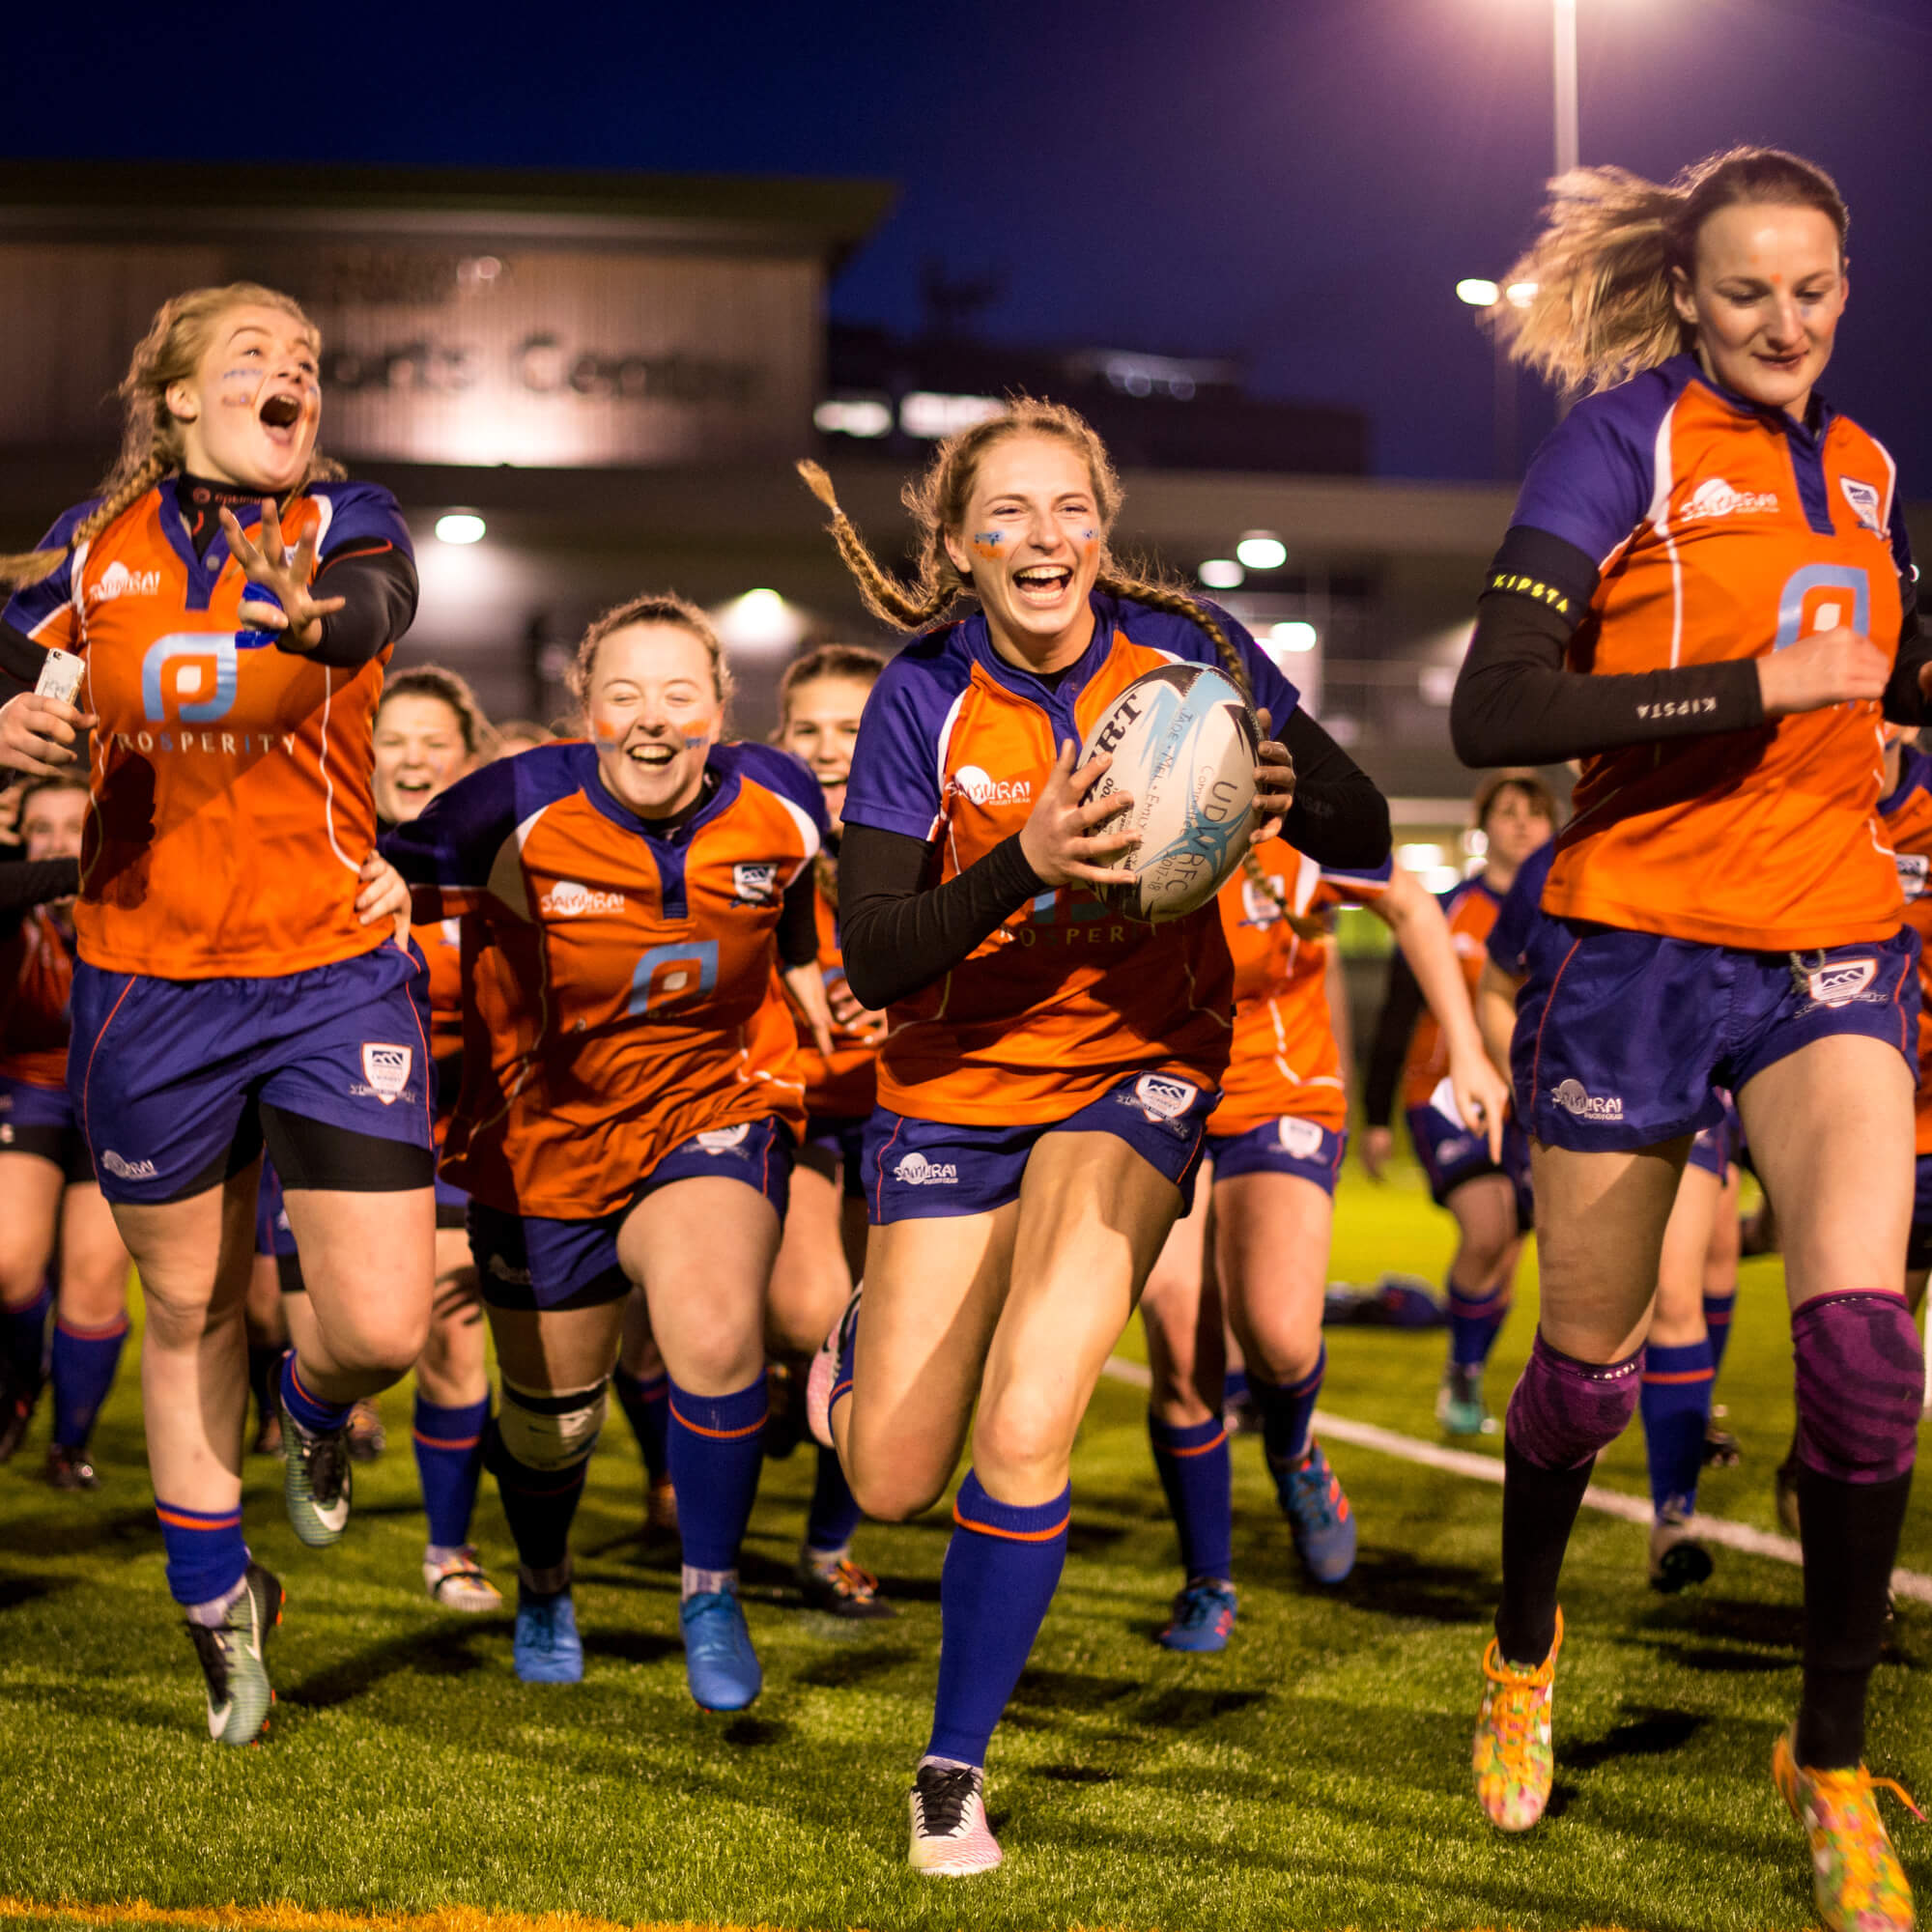 Women's Rugby Team at Varsity 2018